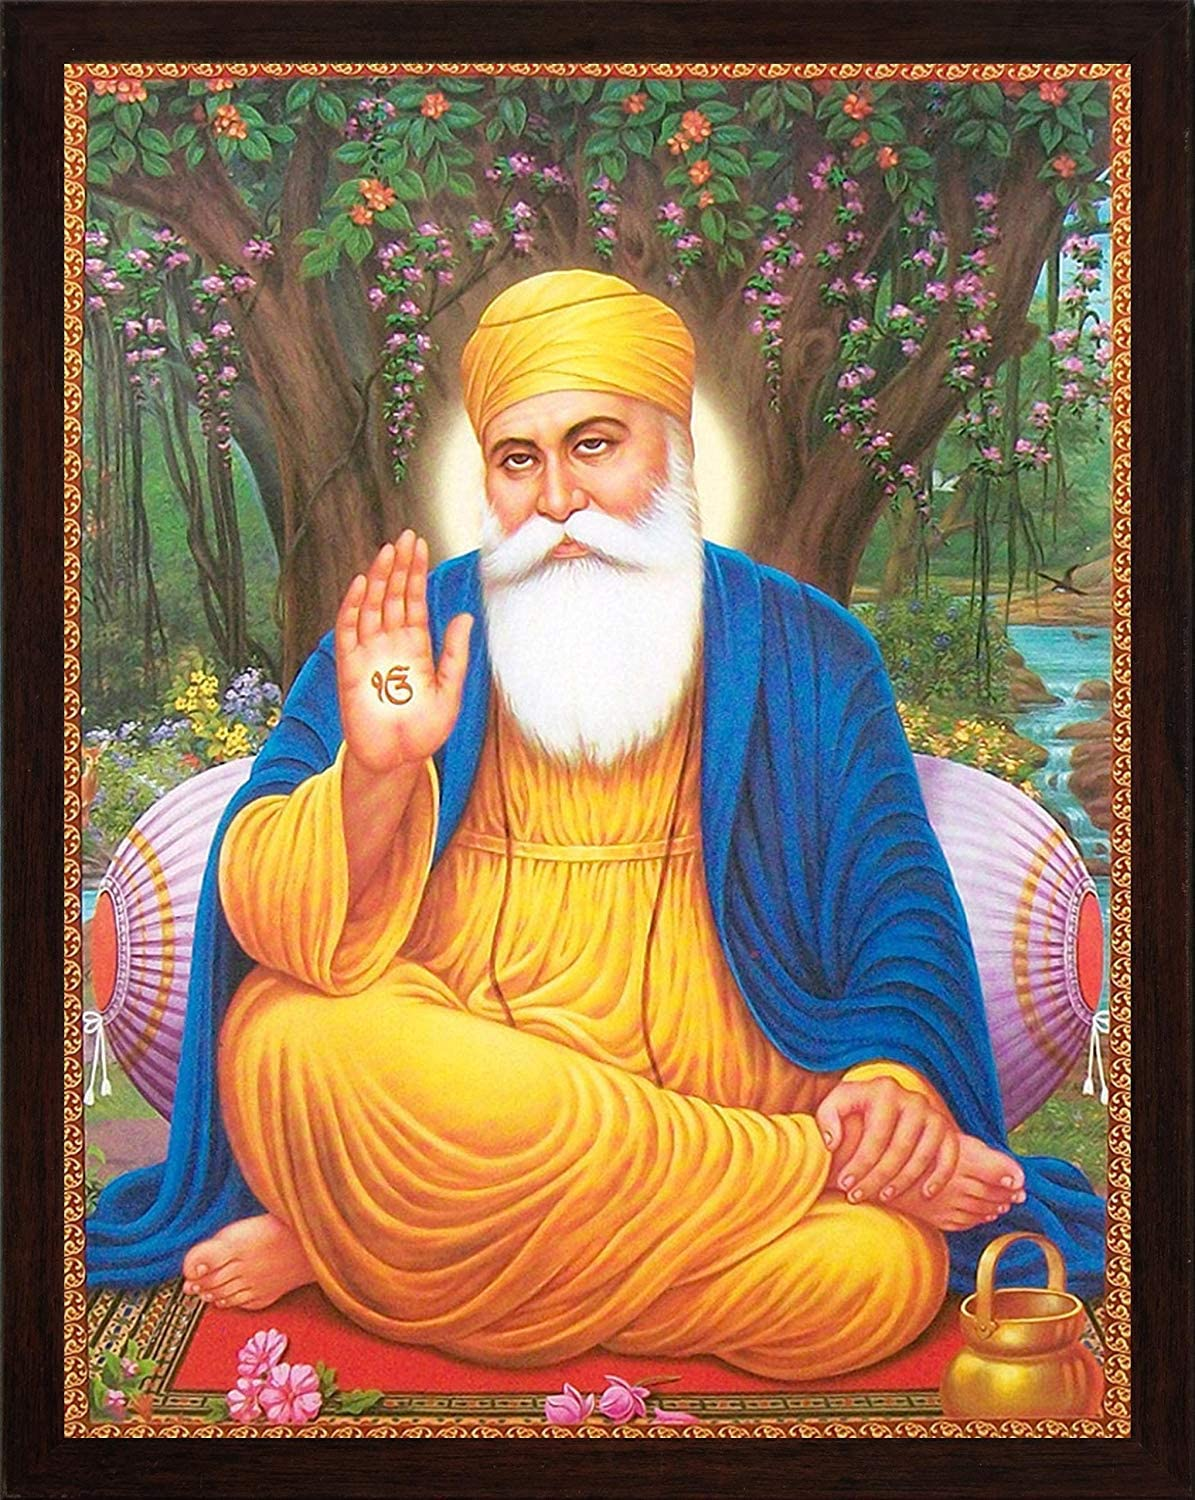 Handicraft Store Guru nanak Dev ji Sitting Under Tree and Giving Blessings  with ekumkar Symbol in Hand, A Sikh Religious Painting Poster with Frame,  Must for Sikh Family Home/Office/Gift Purpose: Amazon.co.uk: Welcome